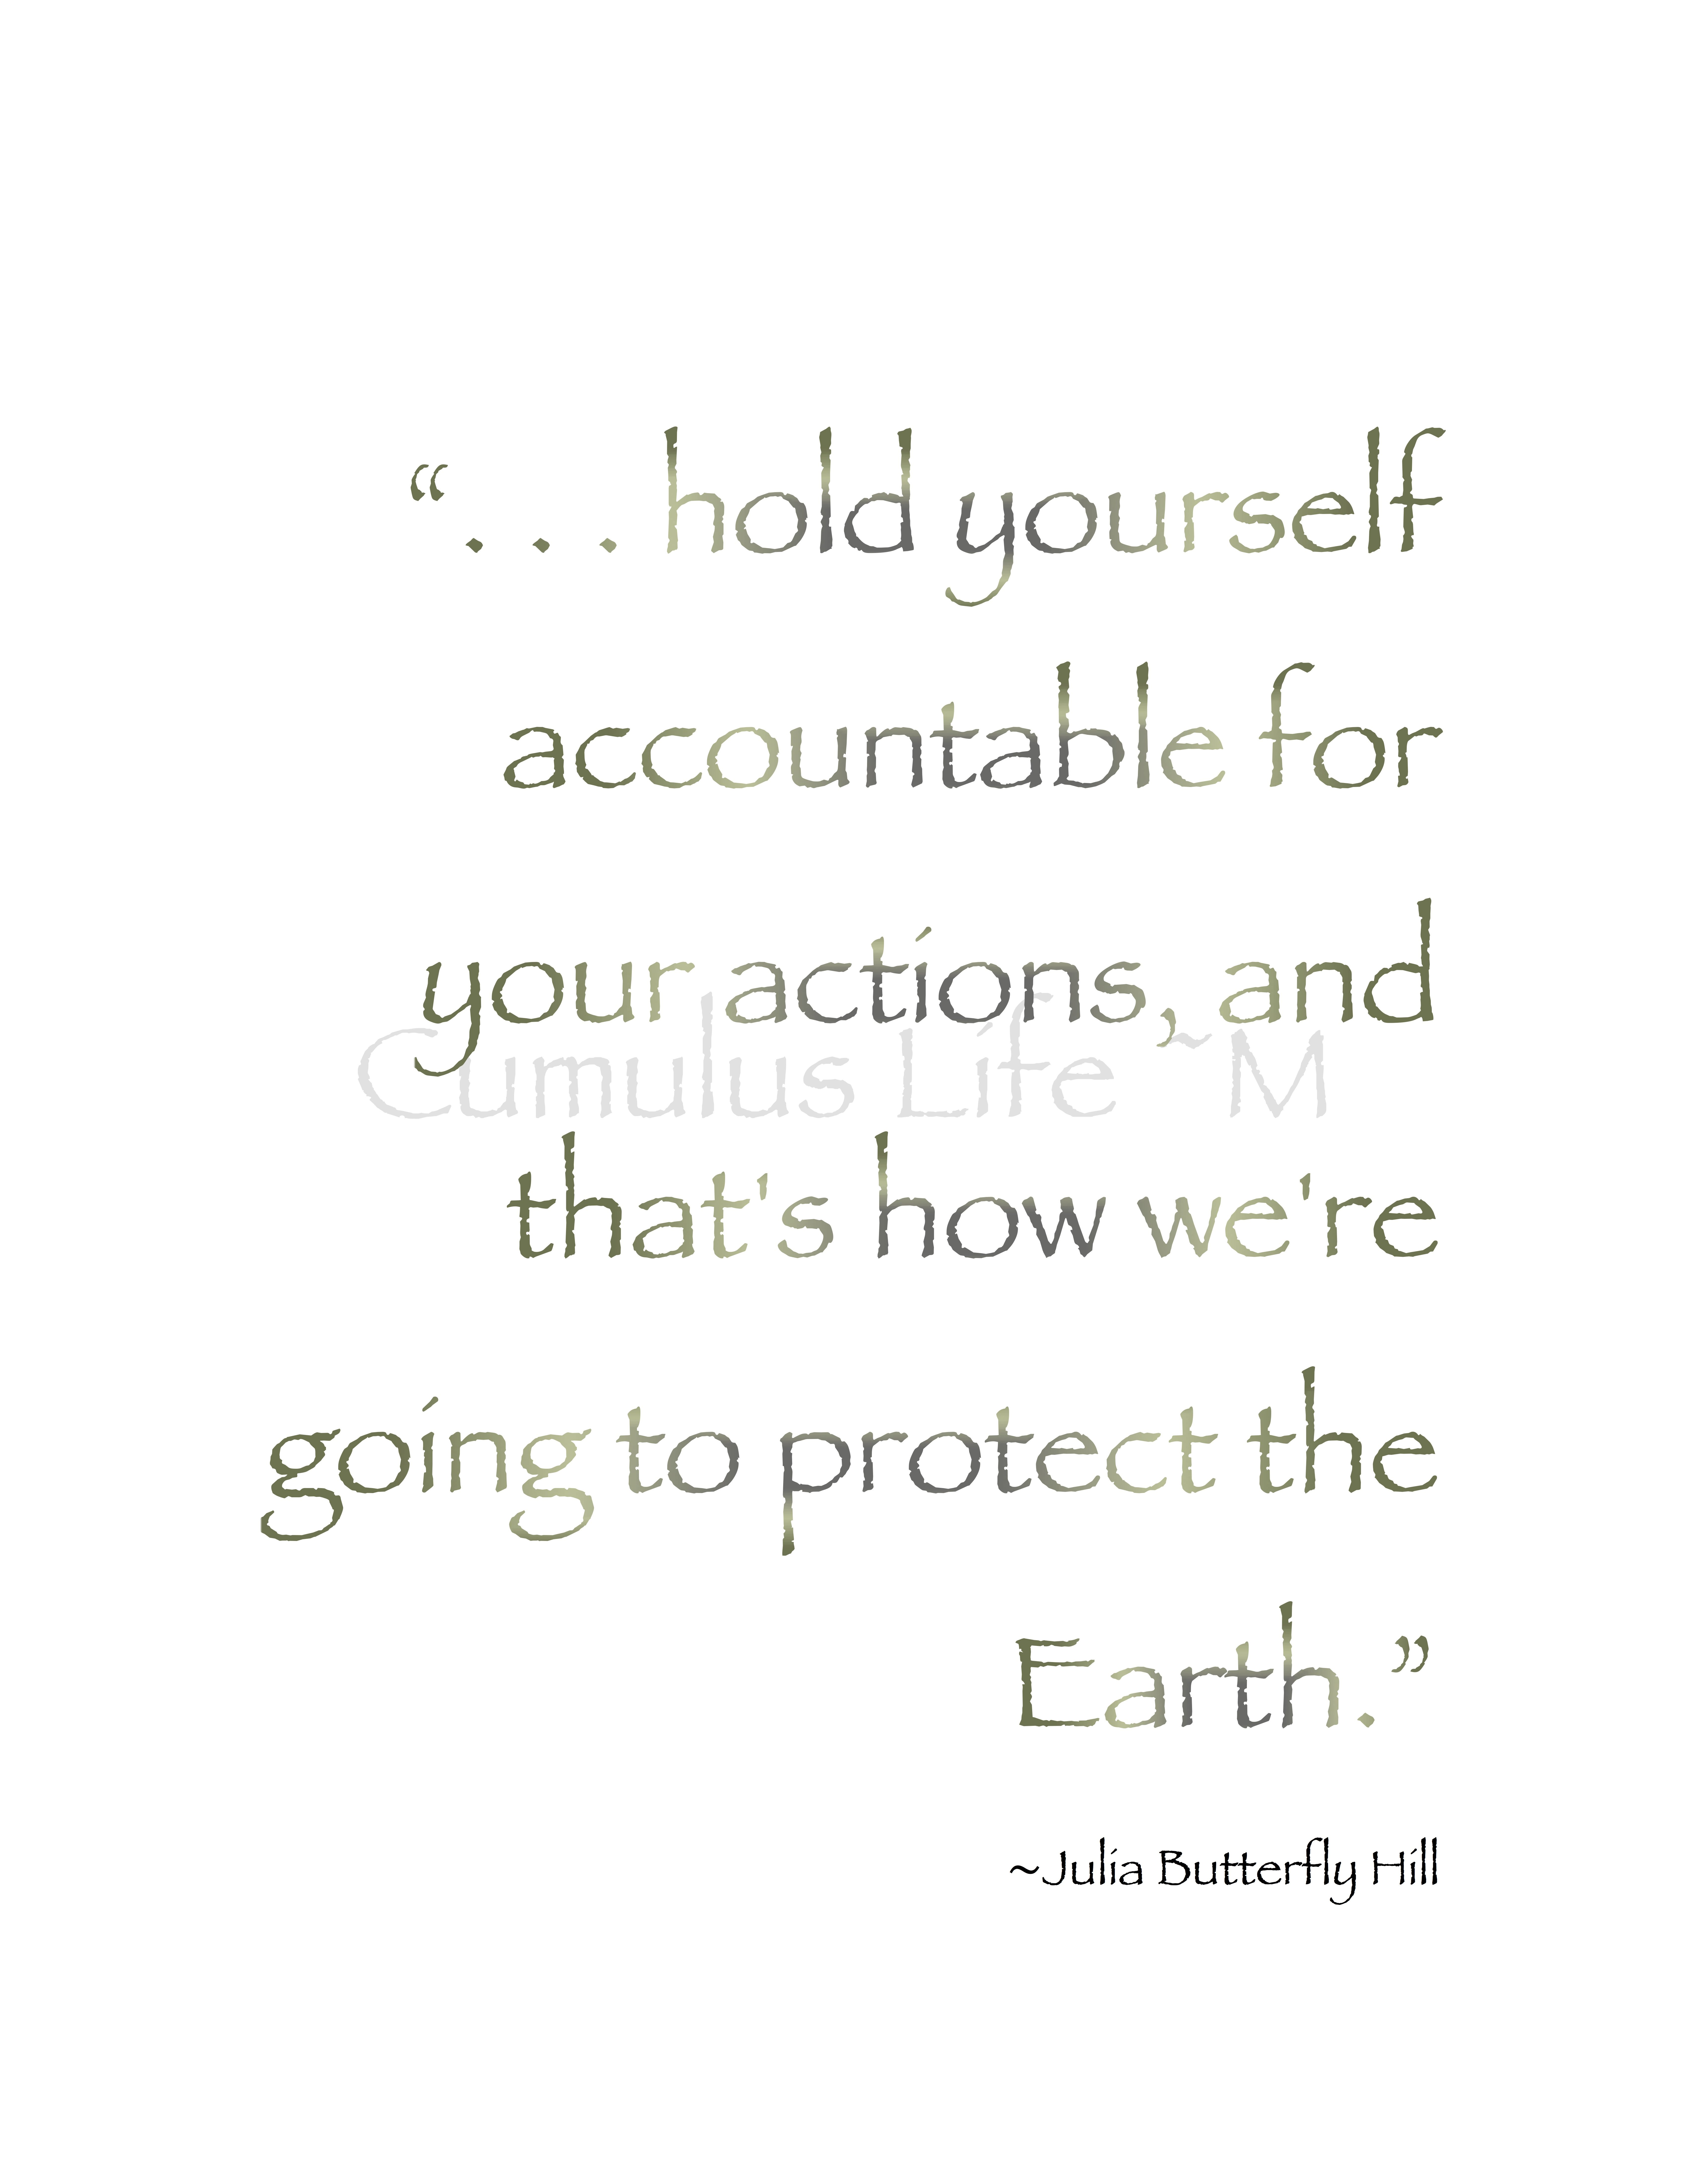 Hold Yourself Accountable For Your Actions And That S How We Re Going To Protect The Earth Julia But Nature Quotes Nature Quotes Trees Forest Quotes